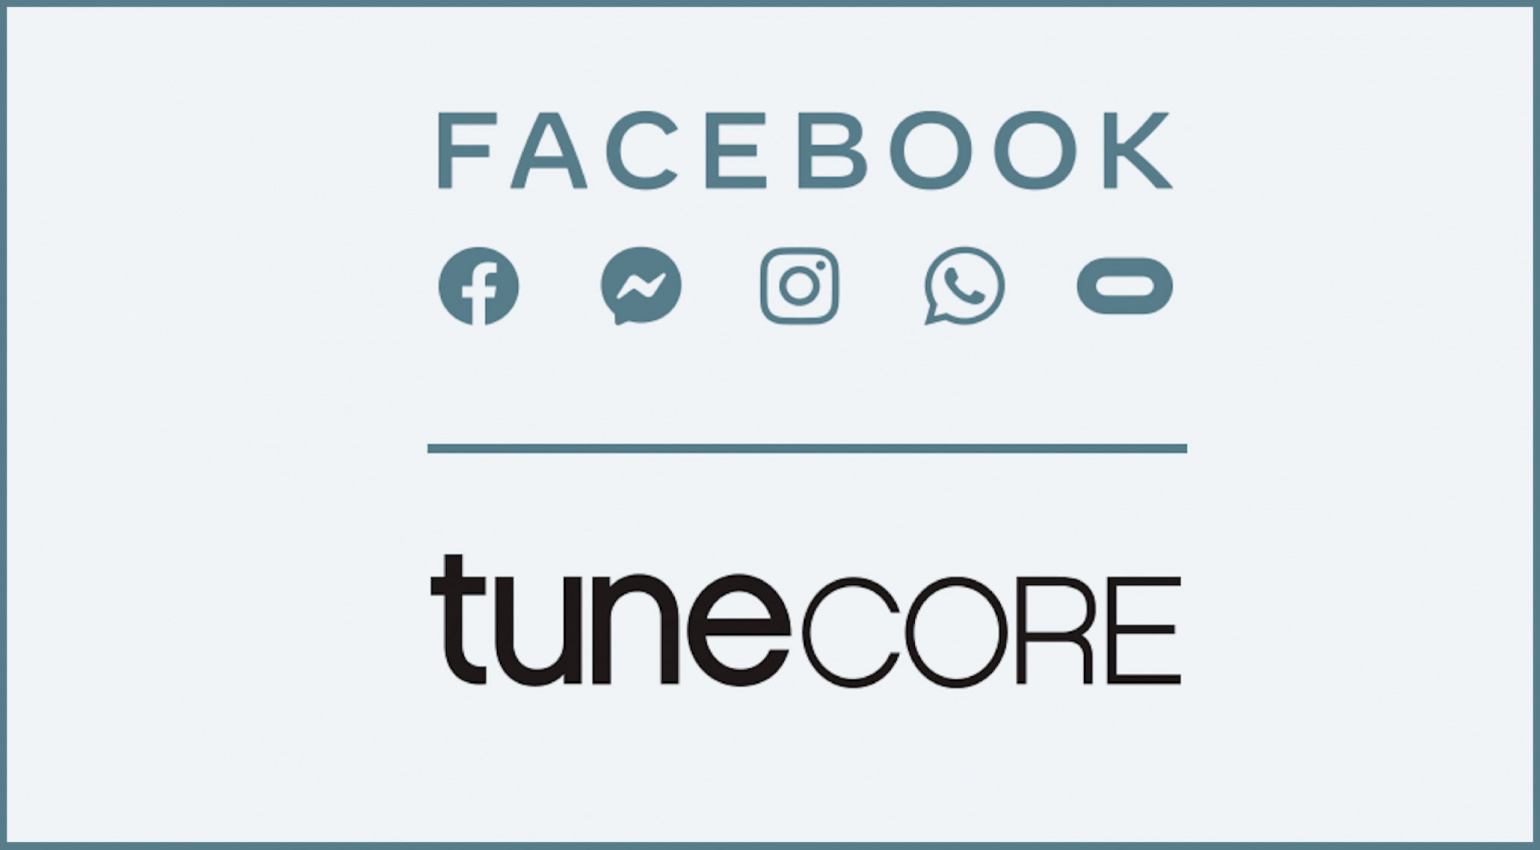 Tunecore recently launched a partnership with Facebook